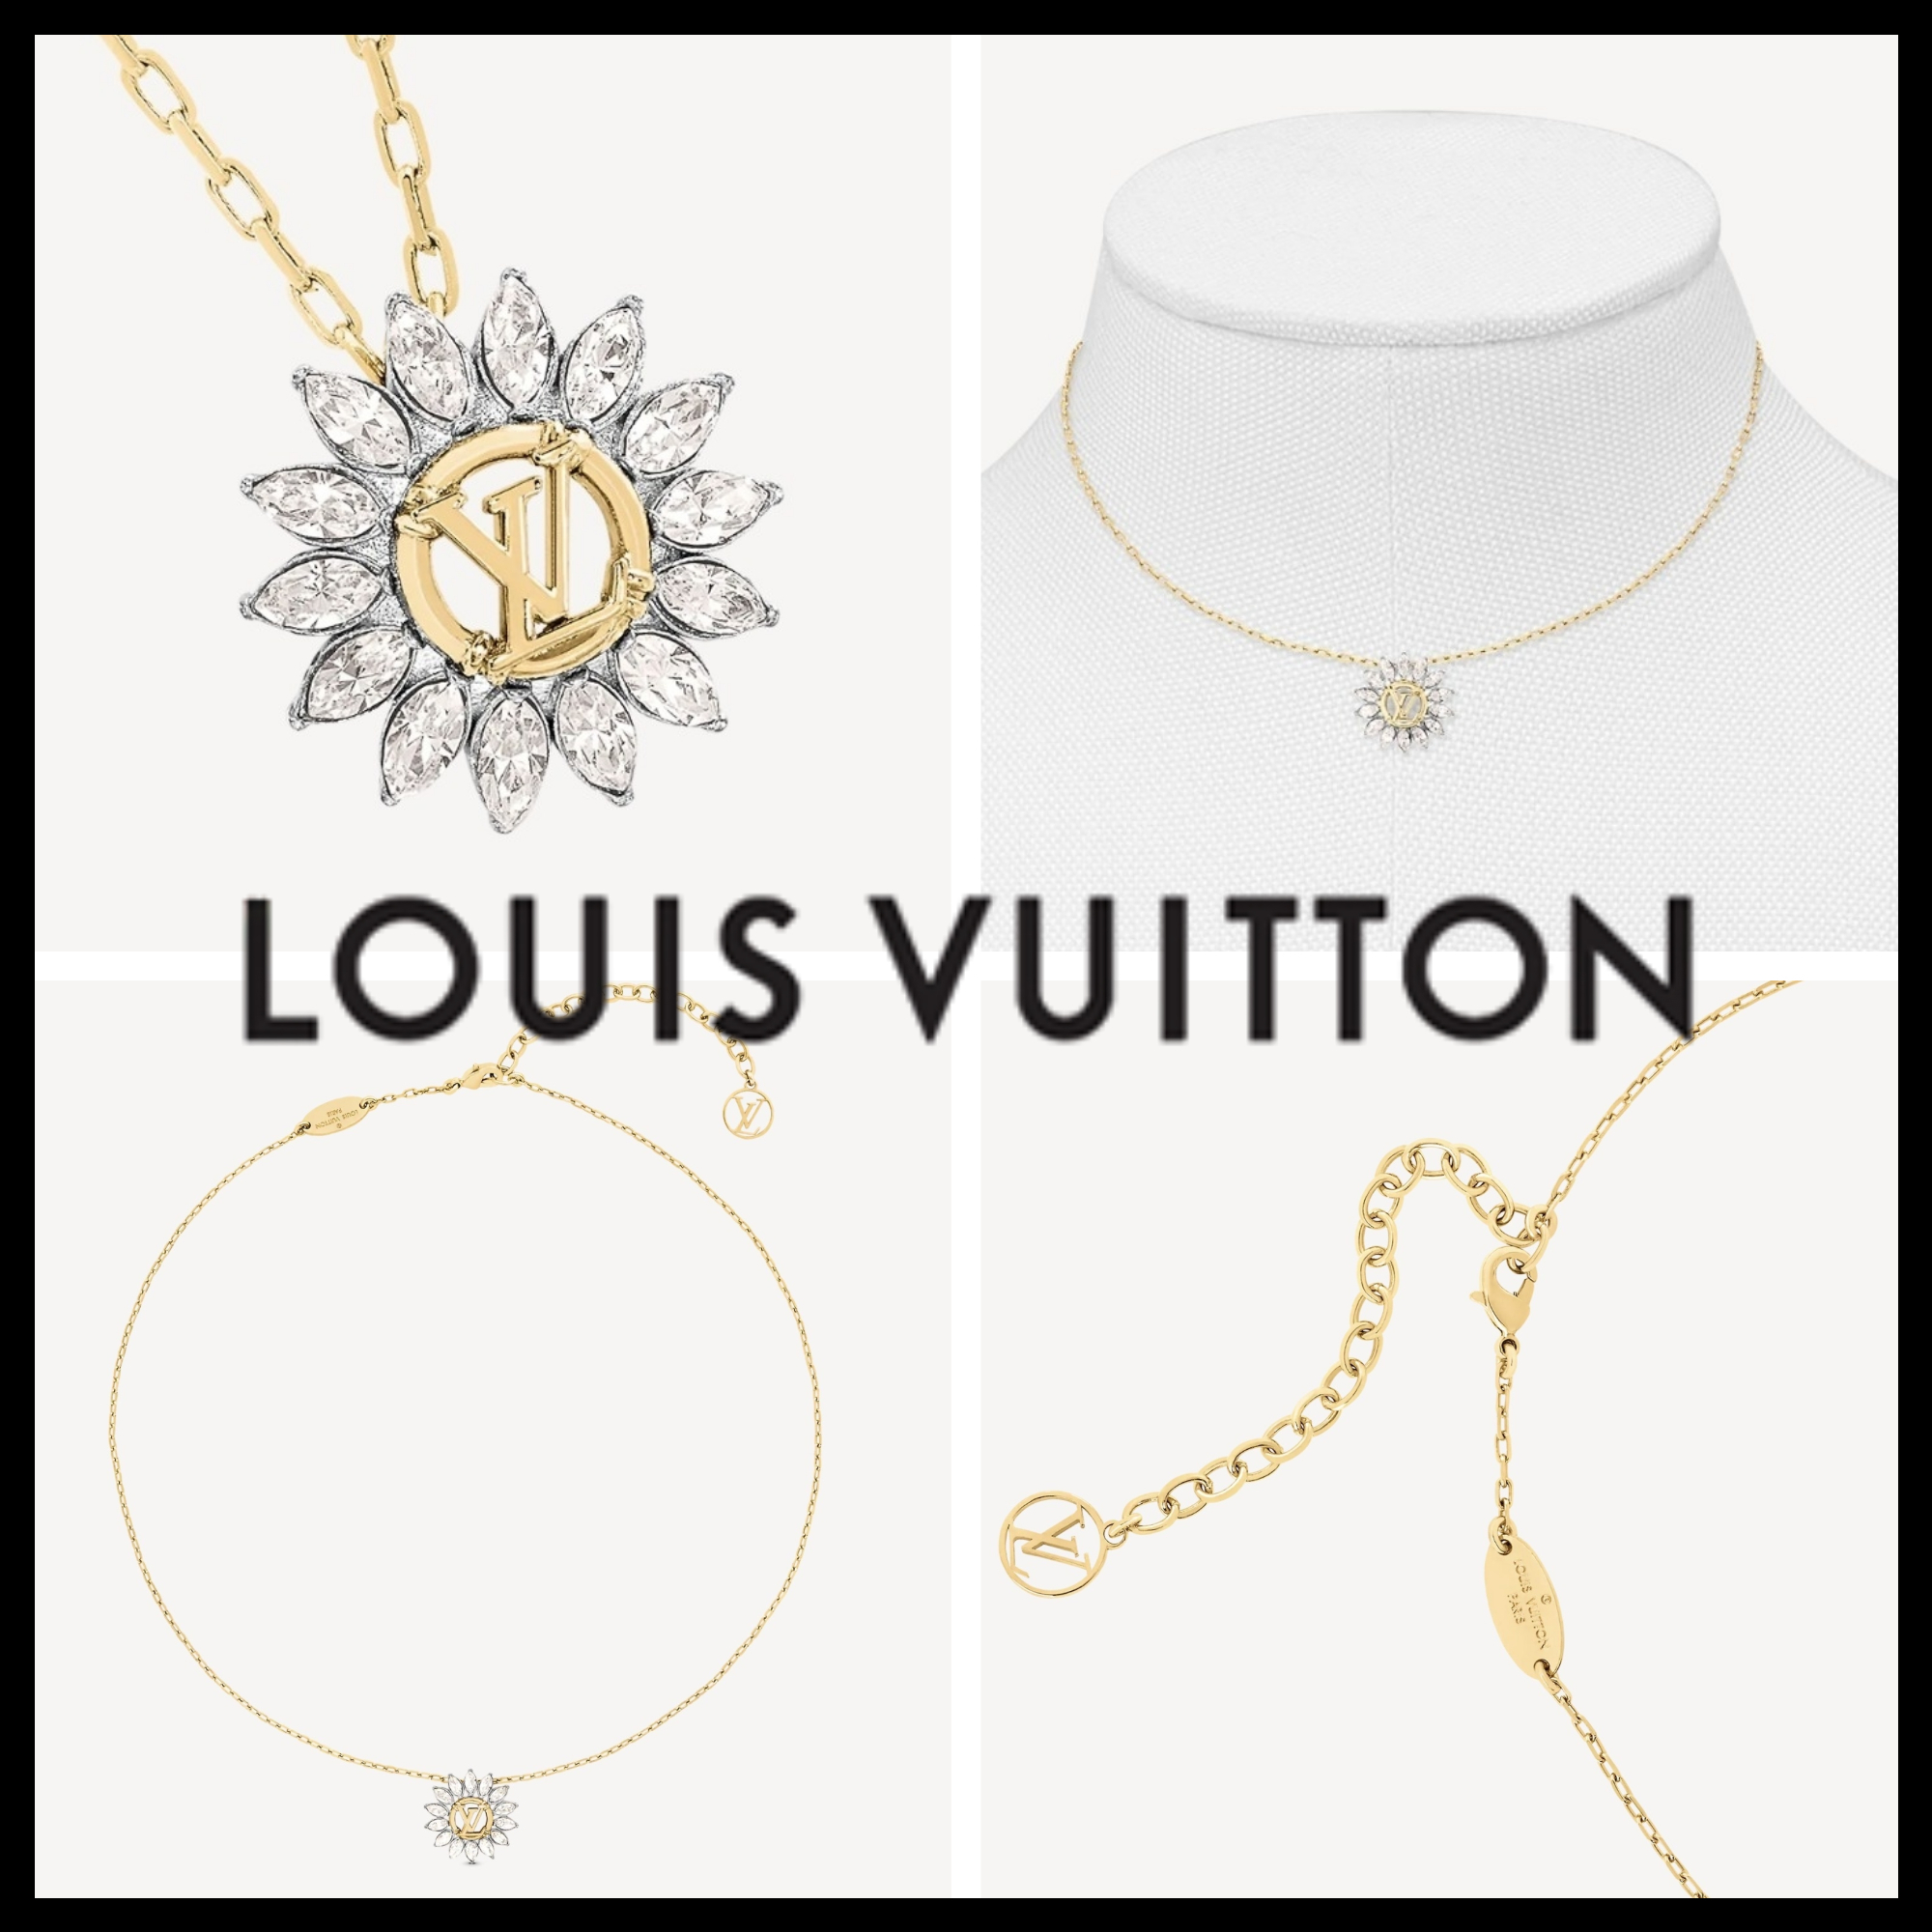 ☆LOUIS VUITTON 20AW新作ネックレス☆ コリエ・LV スターライト (Louis Vuitton/ネックレス・ペンダント) M80262